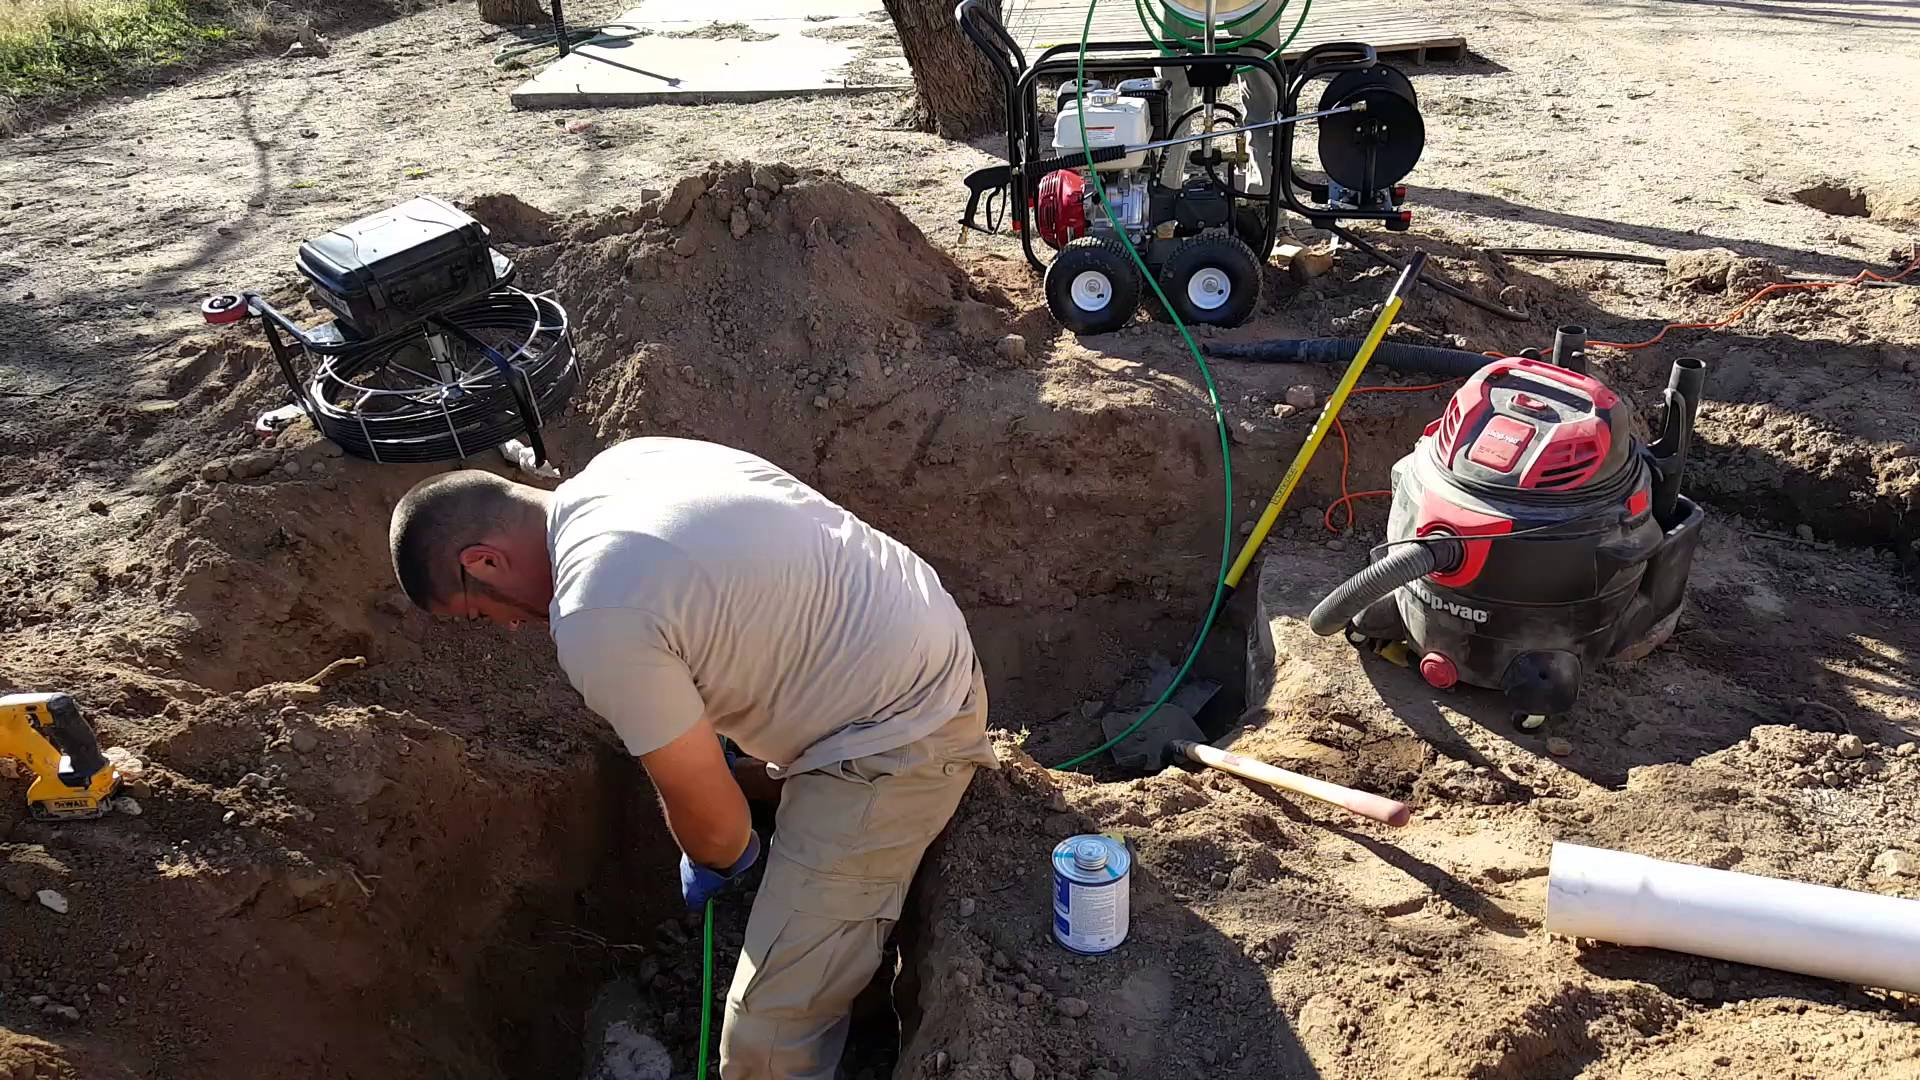 Pleasant Grove-Mesquite TX Septic Tank Pumping, Installation, & Repairs-We offer Septic Service & Repairs, Septic Tank Installations, Septic Tank Cleaning, Commercial, Septic System, Drain Cleaning, Line Snaking, Portable Toilet, Grease Trap Pumping & Cleaning, Septic Tank Pumping, Sewage Pump, Sewer Line Repair, Septic Tank Replacement, Septic Maintenance, Sewer Line Replacement, Porta Potty Rentals, and more.